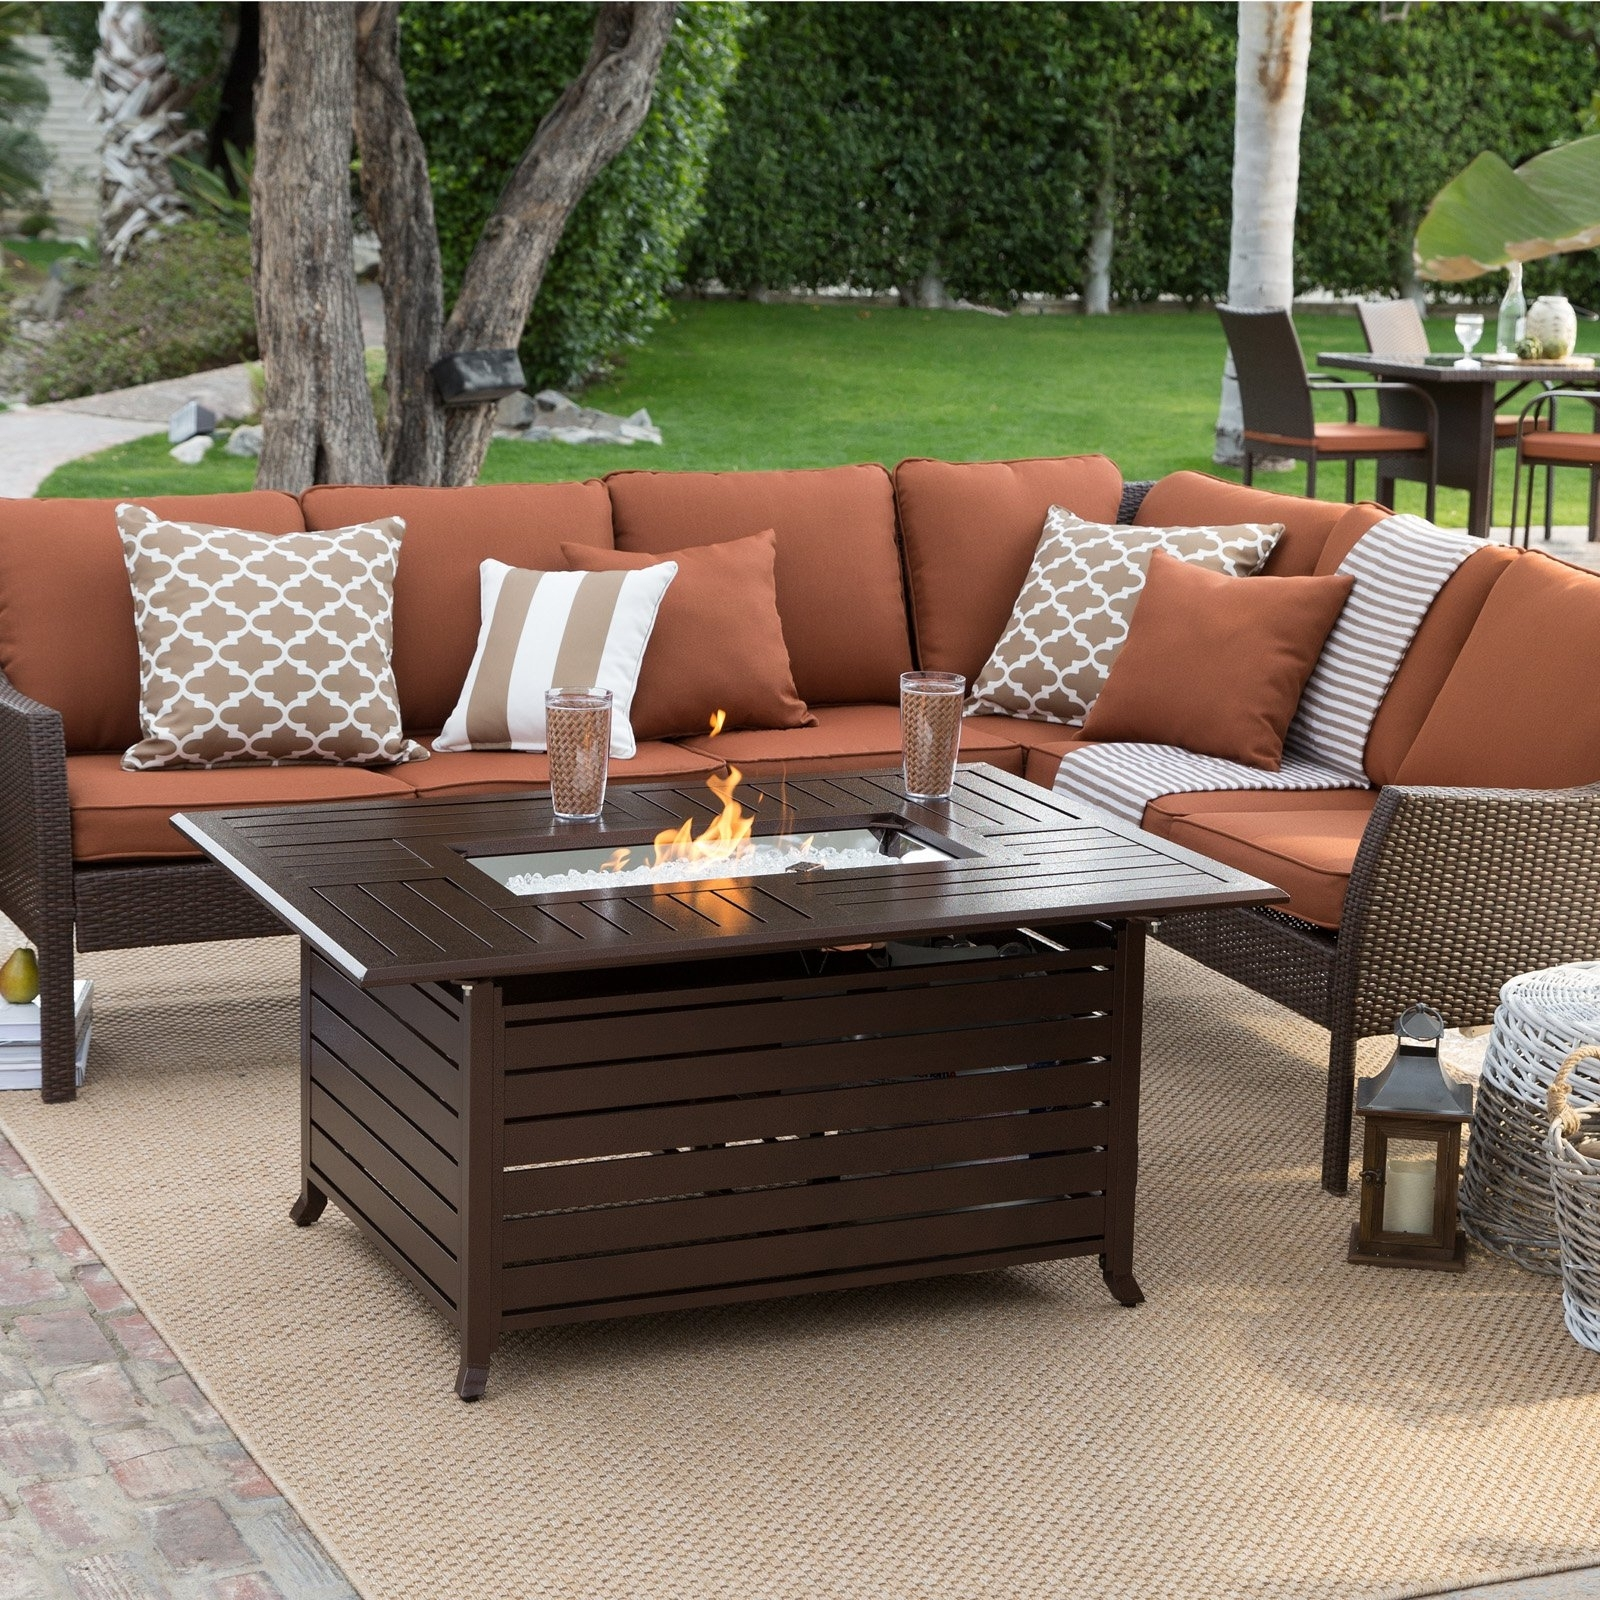 Patio Conversation Sets With Fire Table Intended For Recent Elegant Fire Pit Chairs For Sale Conversation Sets Deck Furniture (View 8 of 15)